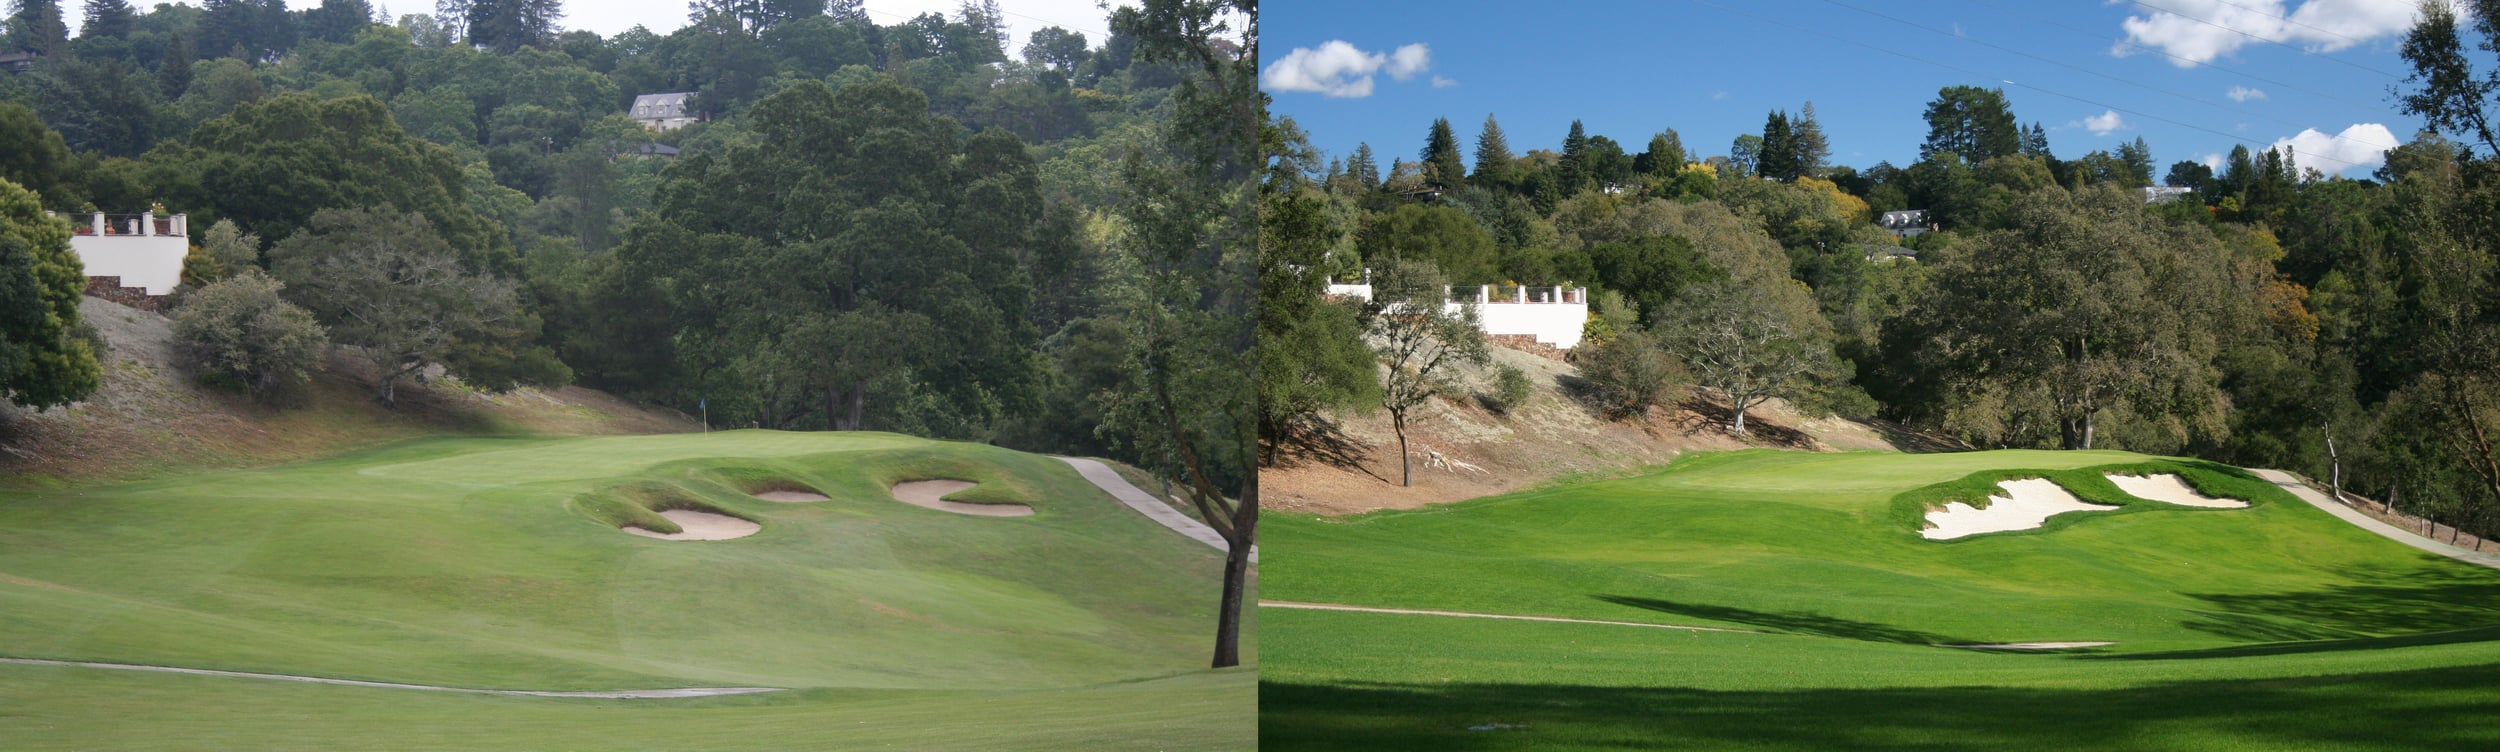 Hole 4 at Orinda, before and after new bunker scheme